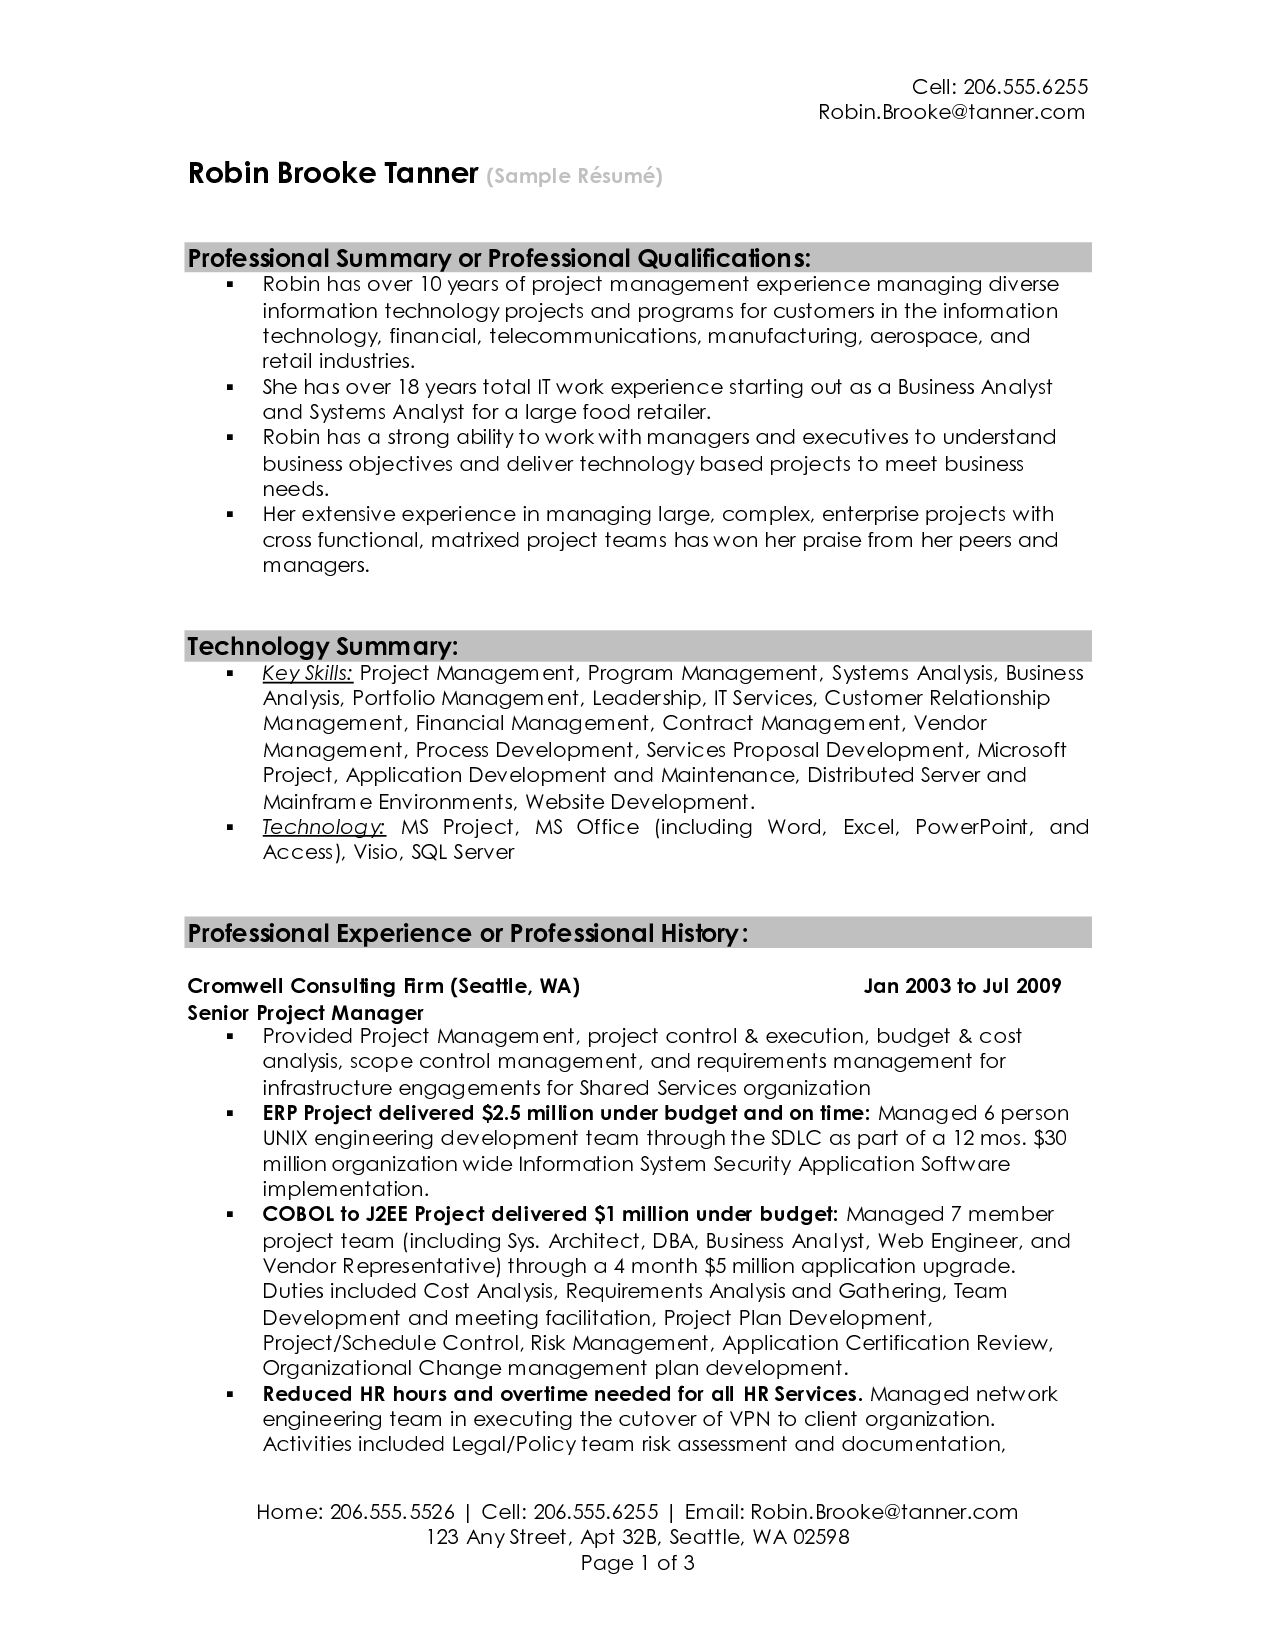 resume Resume Professional Statement Examples examples of a professional summary for resume ninja resume